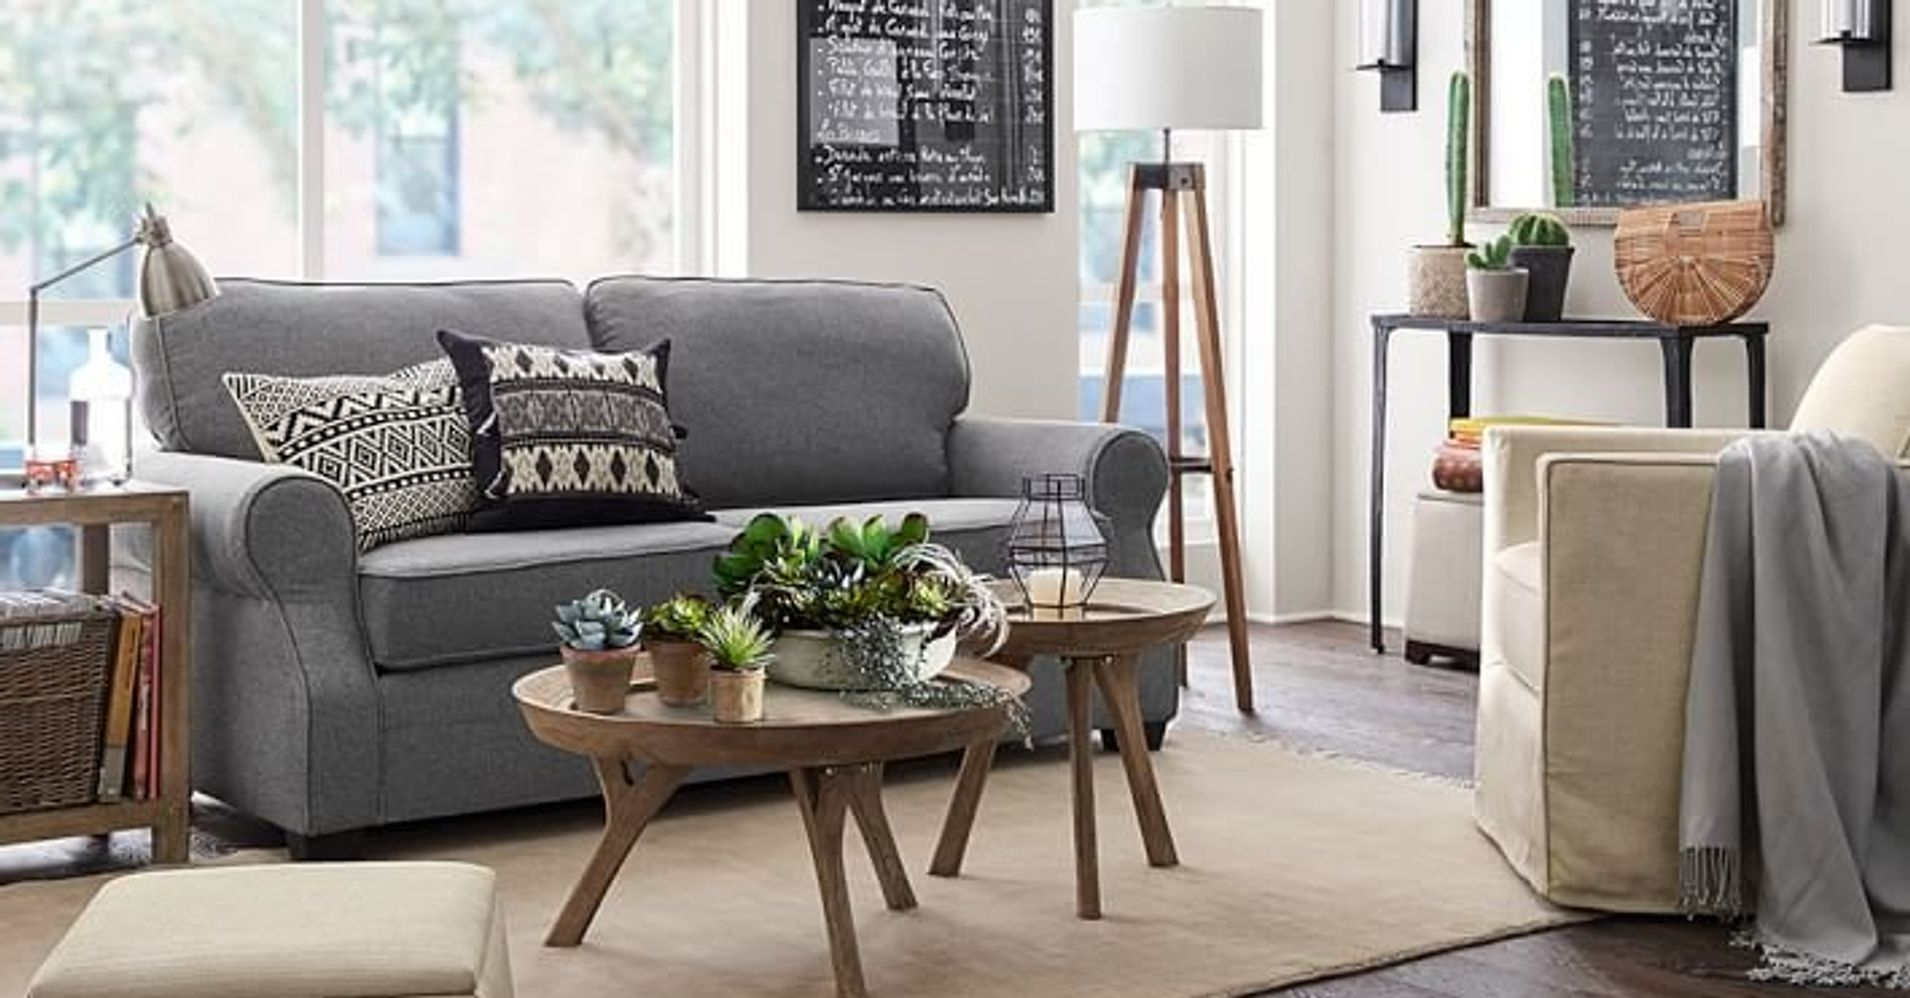 Pottery barn 39 s small spaces collection is great news for for Pottery barn small spaces furniture